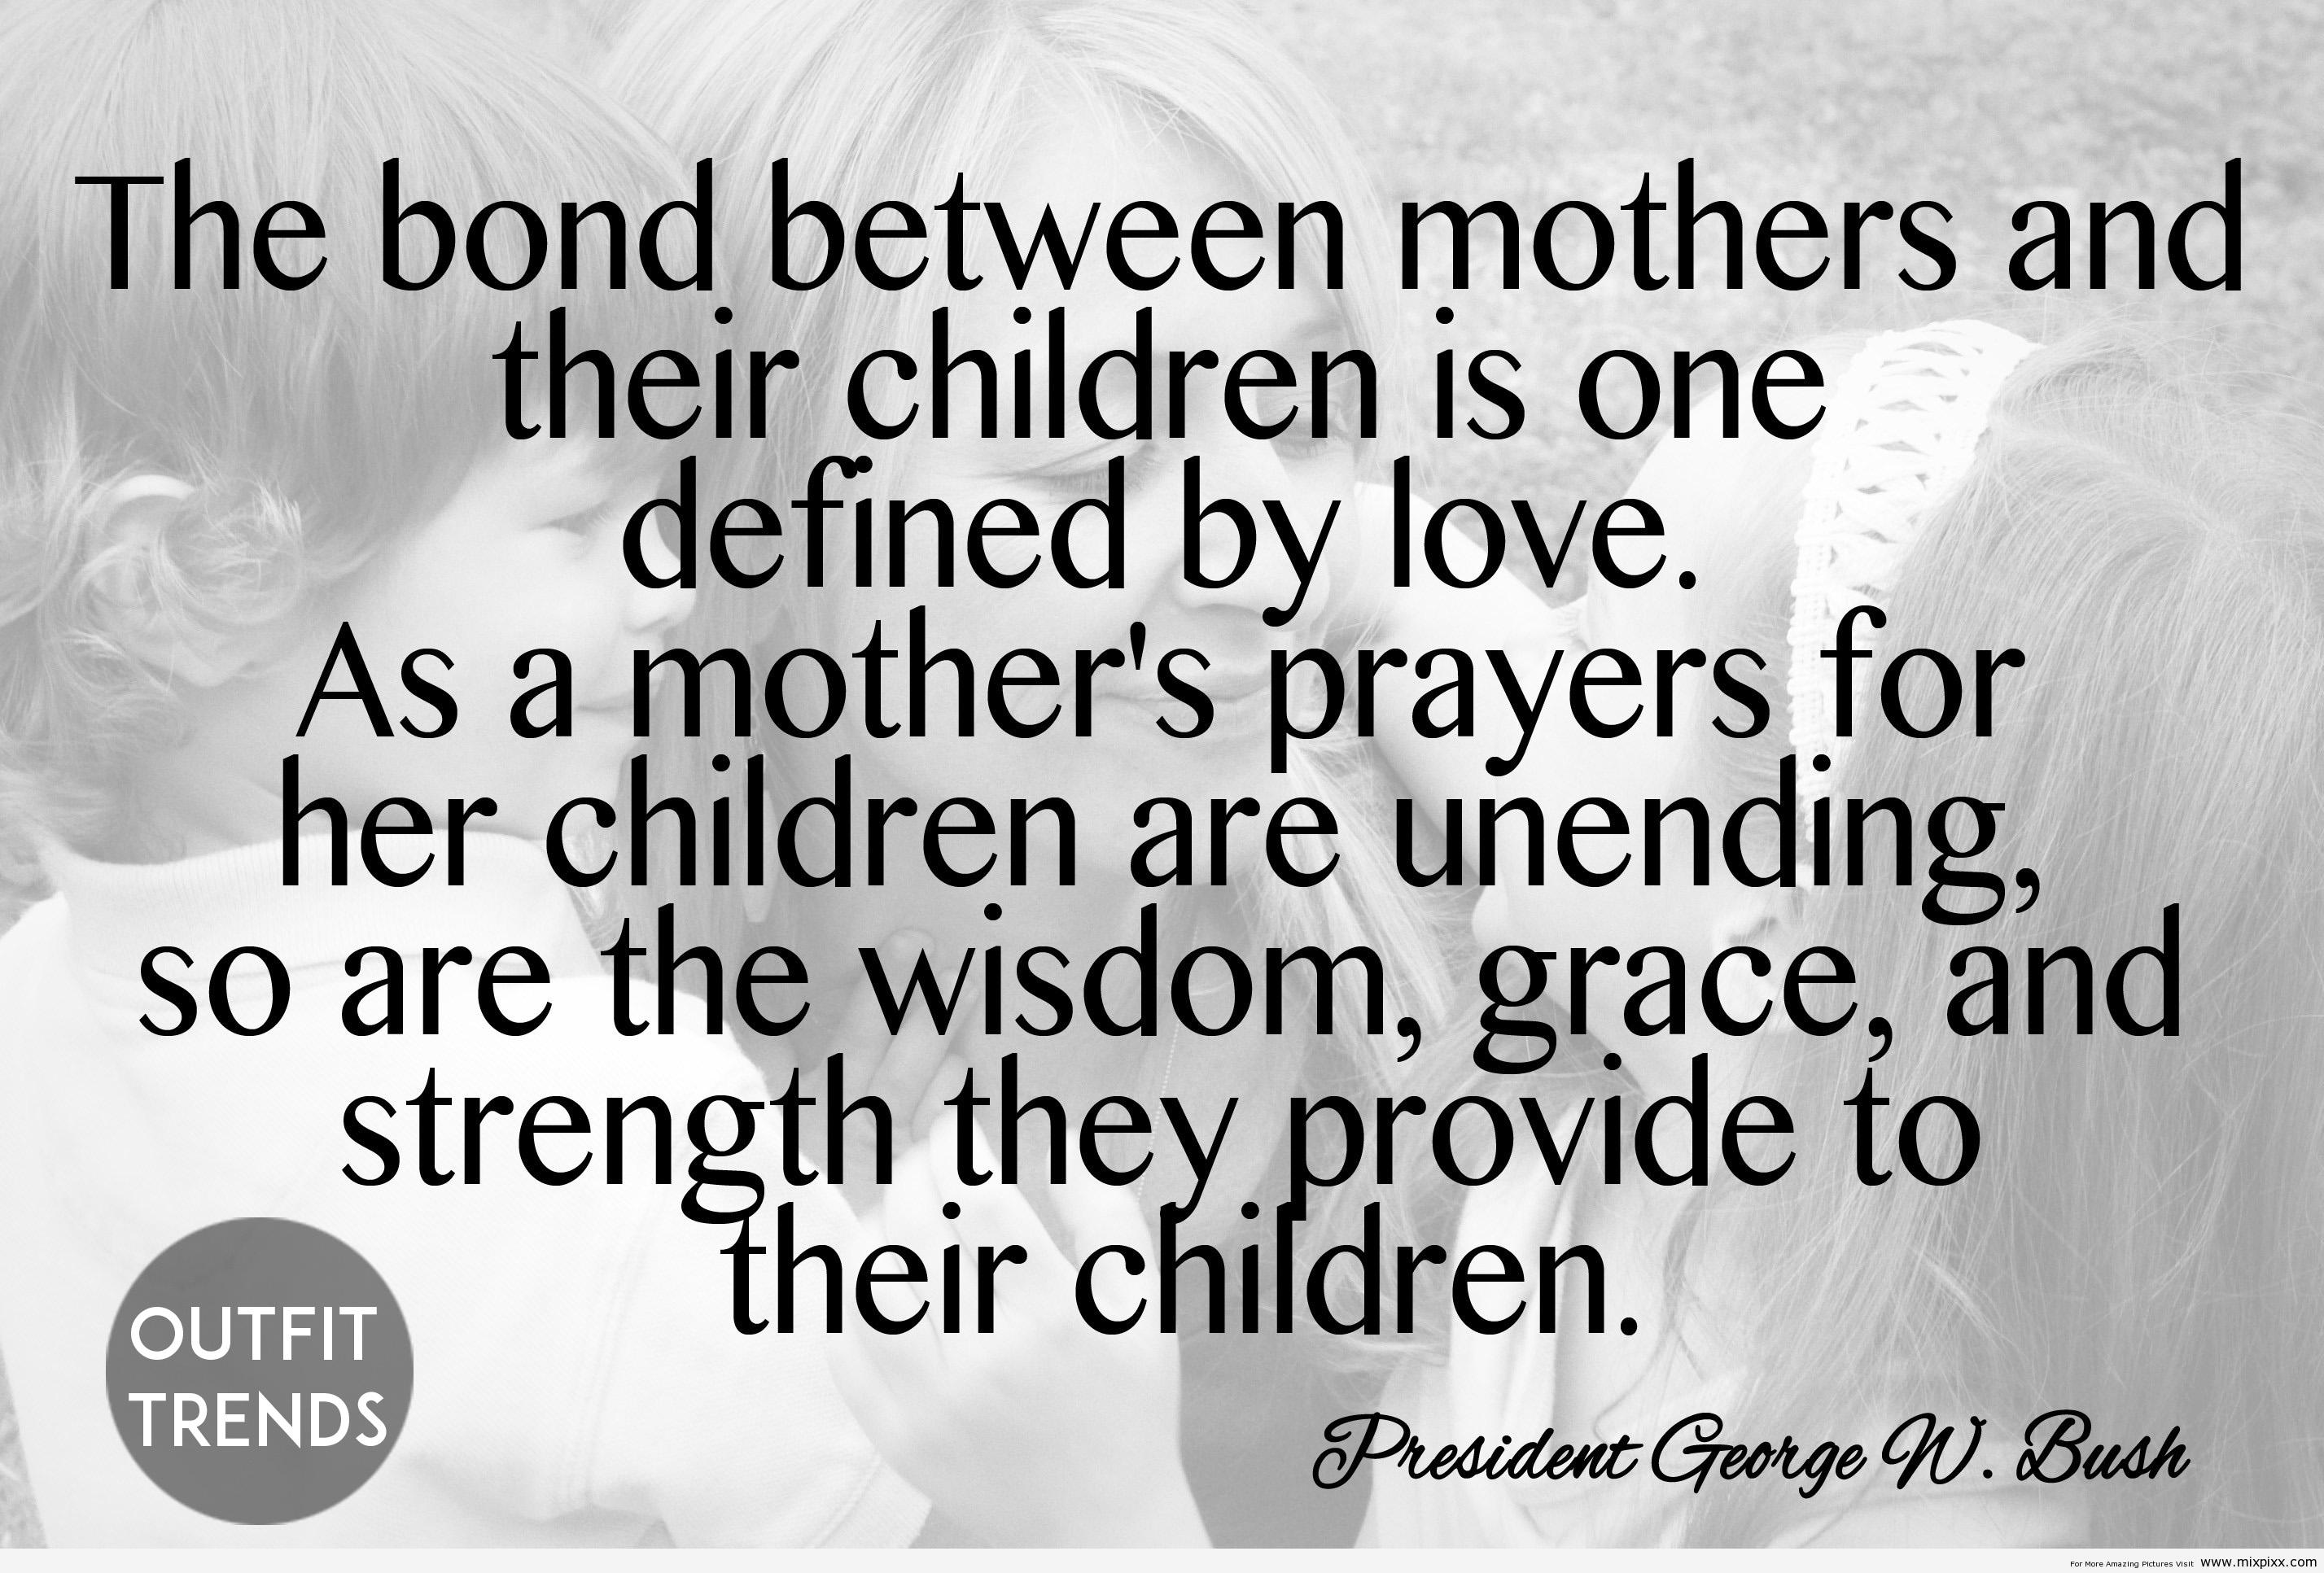 Children Love Quotes 50 Quotes About Mothersislamic And General Quotes On Mothers